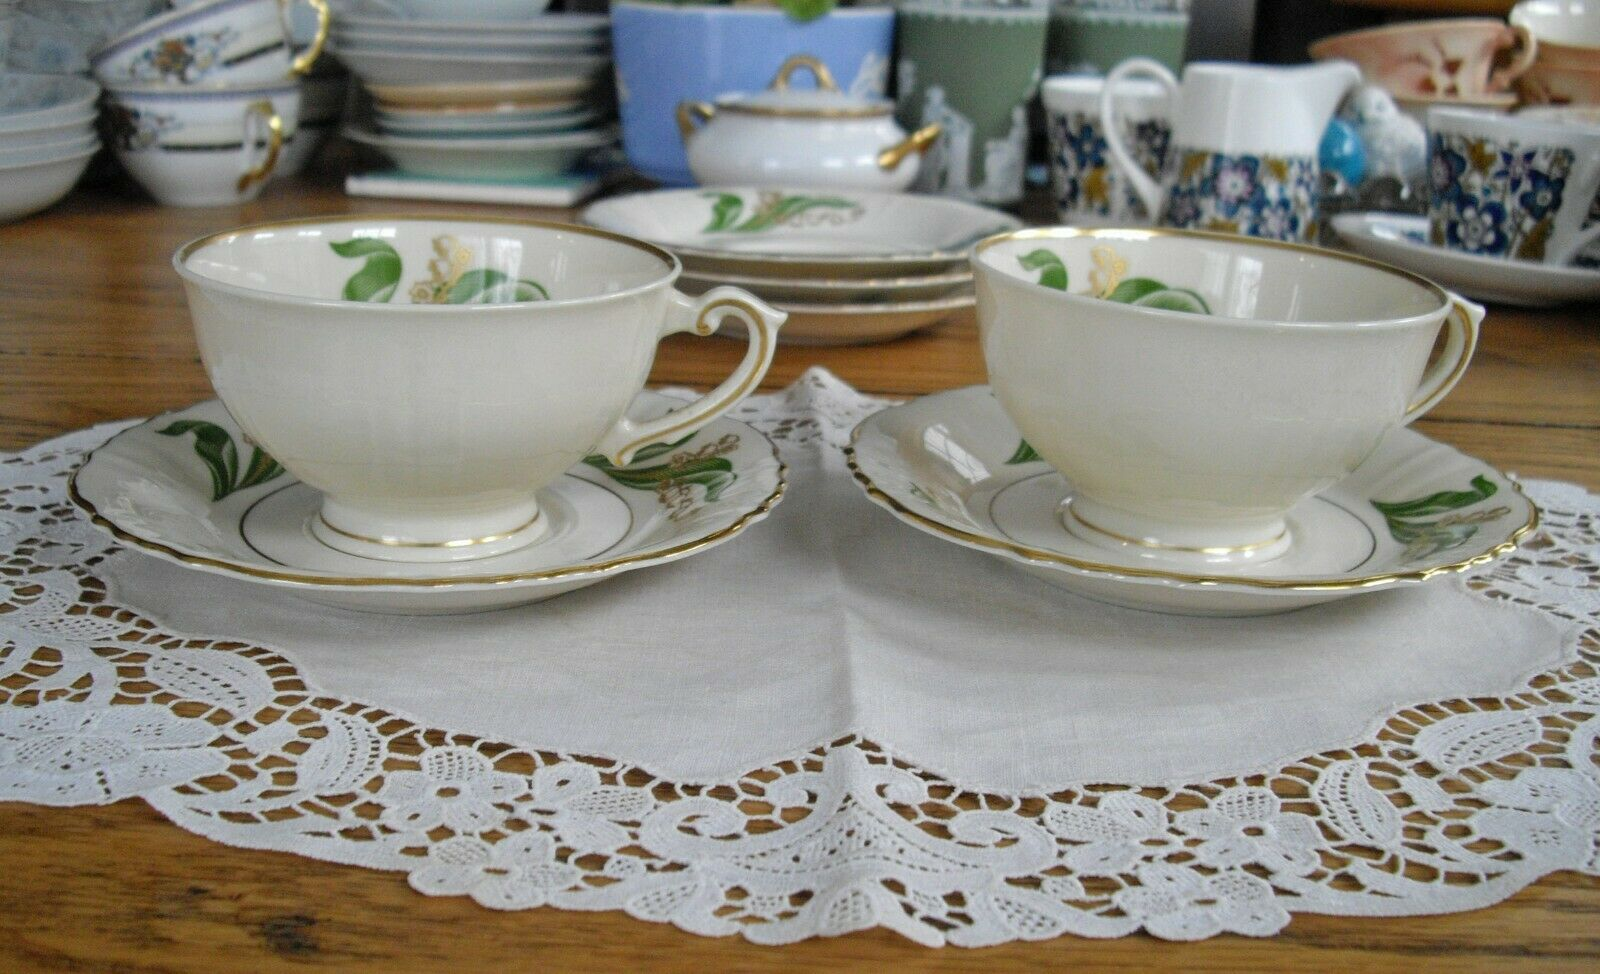 Vintage Syracuse China LILY OF THE VALLEY Teacups Saucers Set Of 2  - $12.99